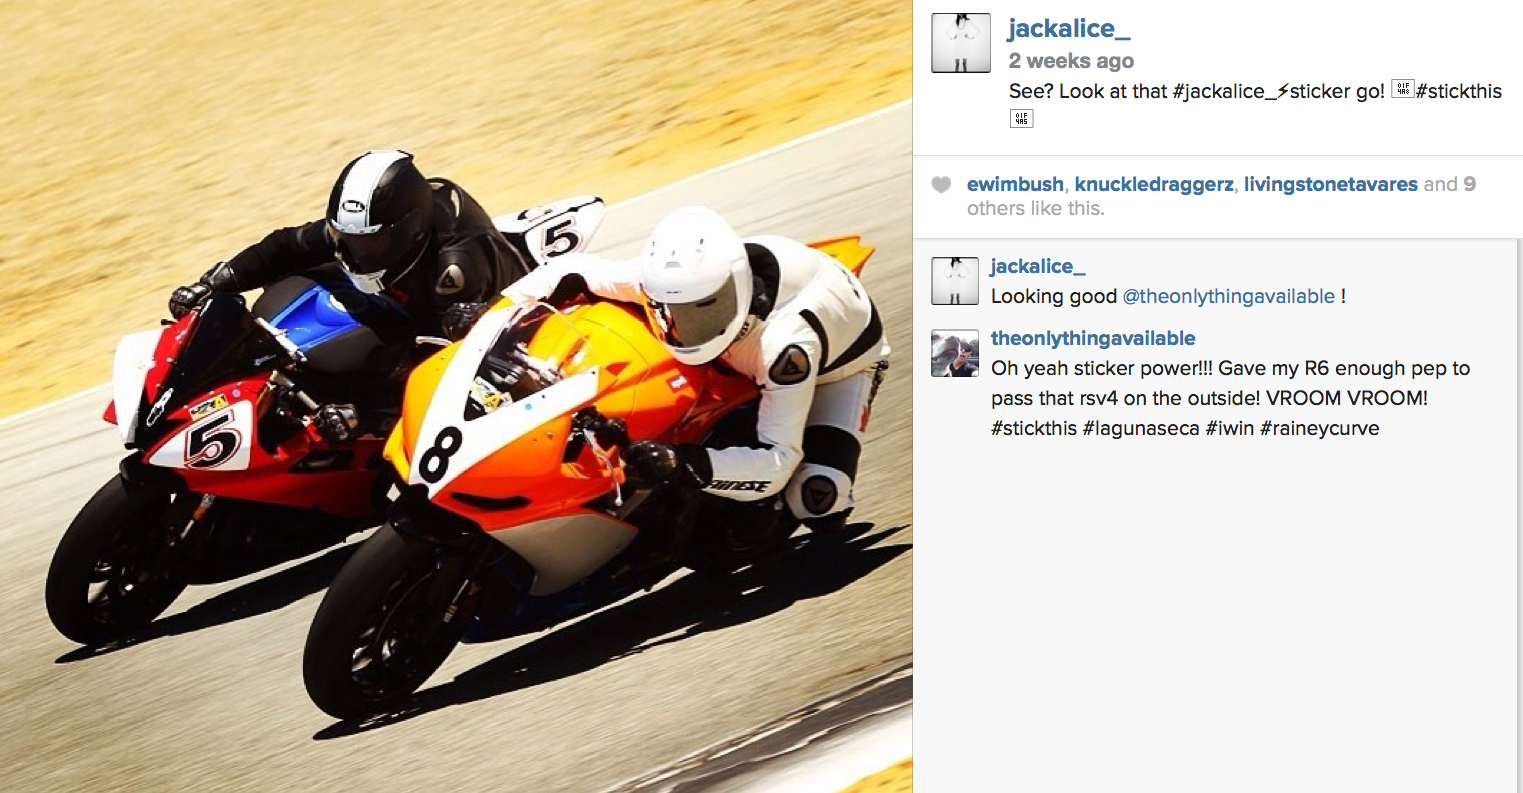 """See? Look at that JACK ALICE sticker go! #stickthis """"Laguna Seca raceway with new sponsor JACK ALICE"""""""